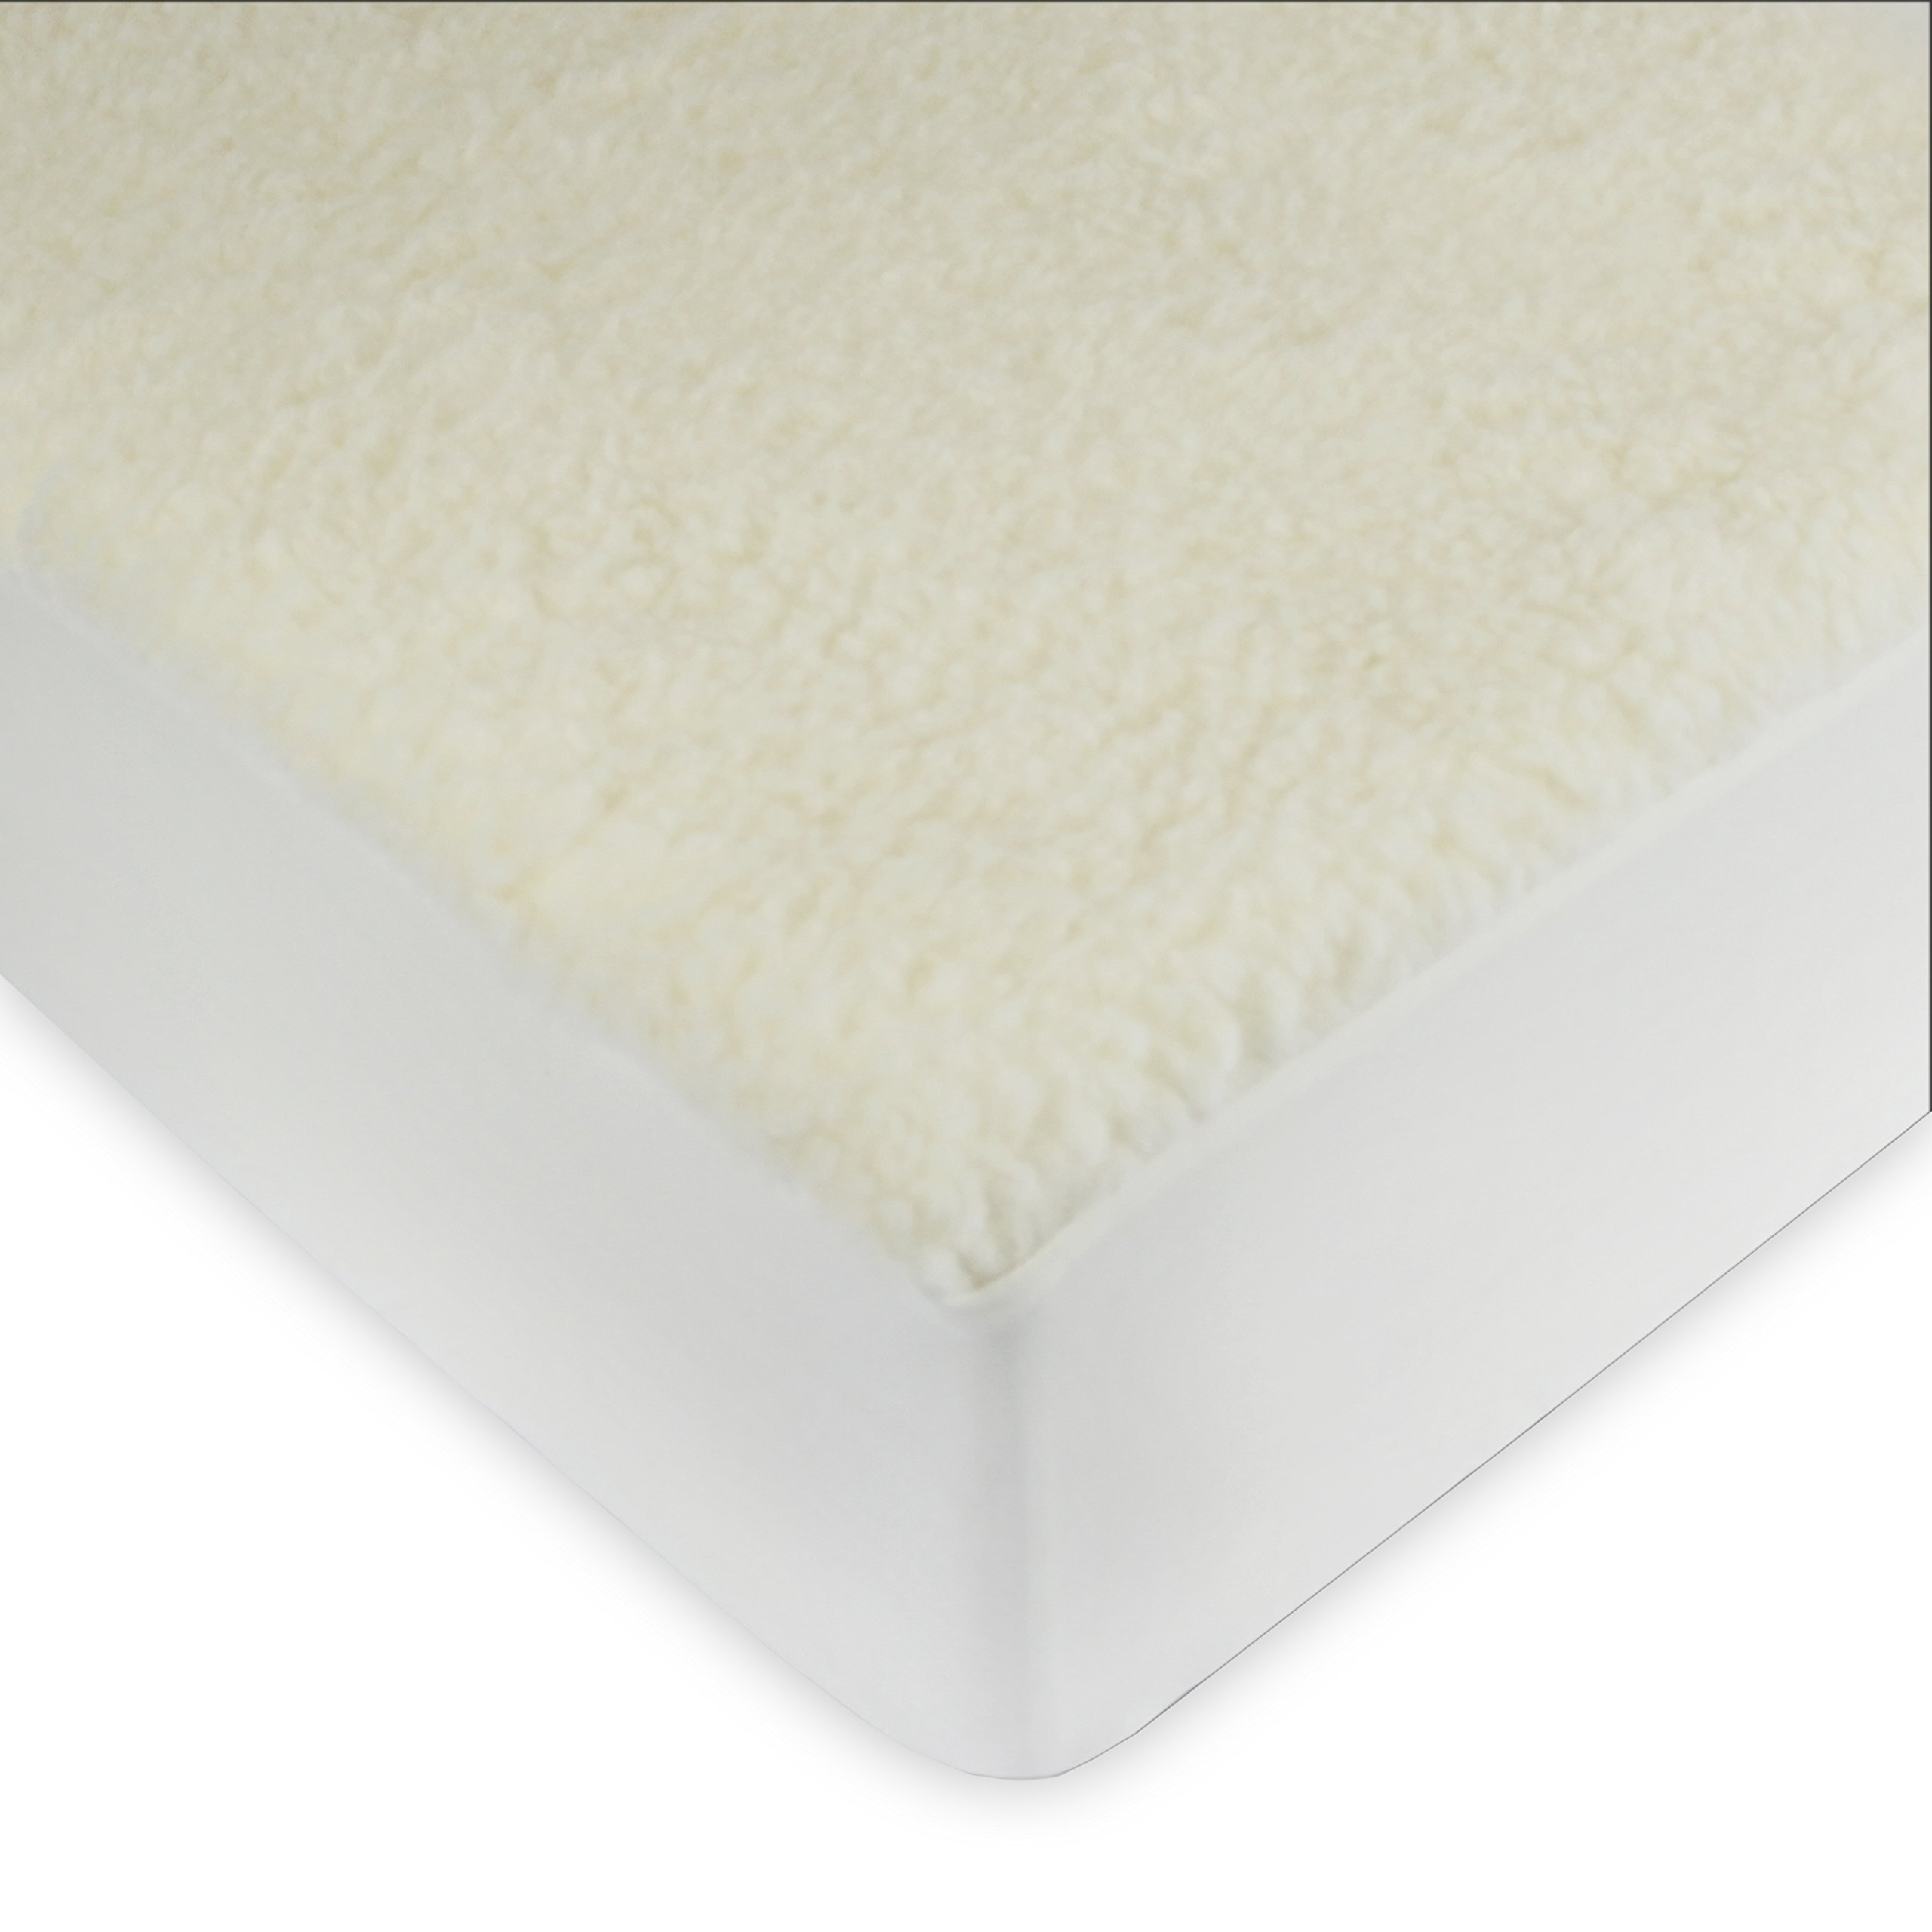 Century Home C601-142 Signature Collection Woolmark Certified Pure Wool Fleece Mattress Pad, Full